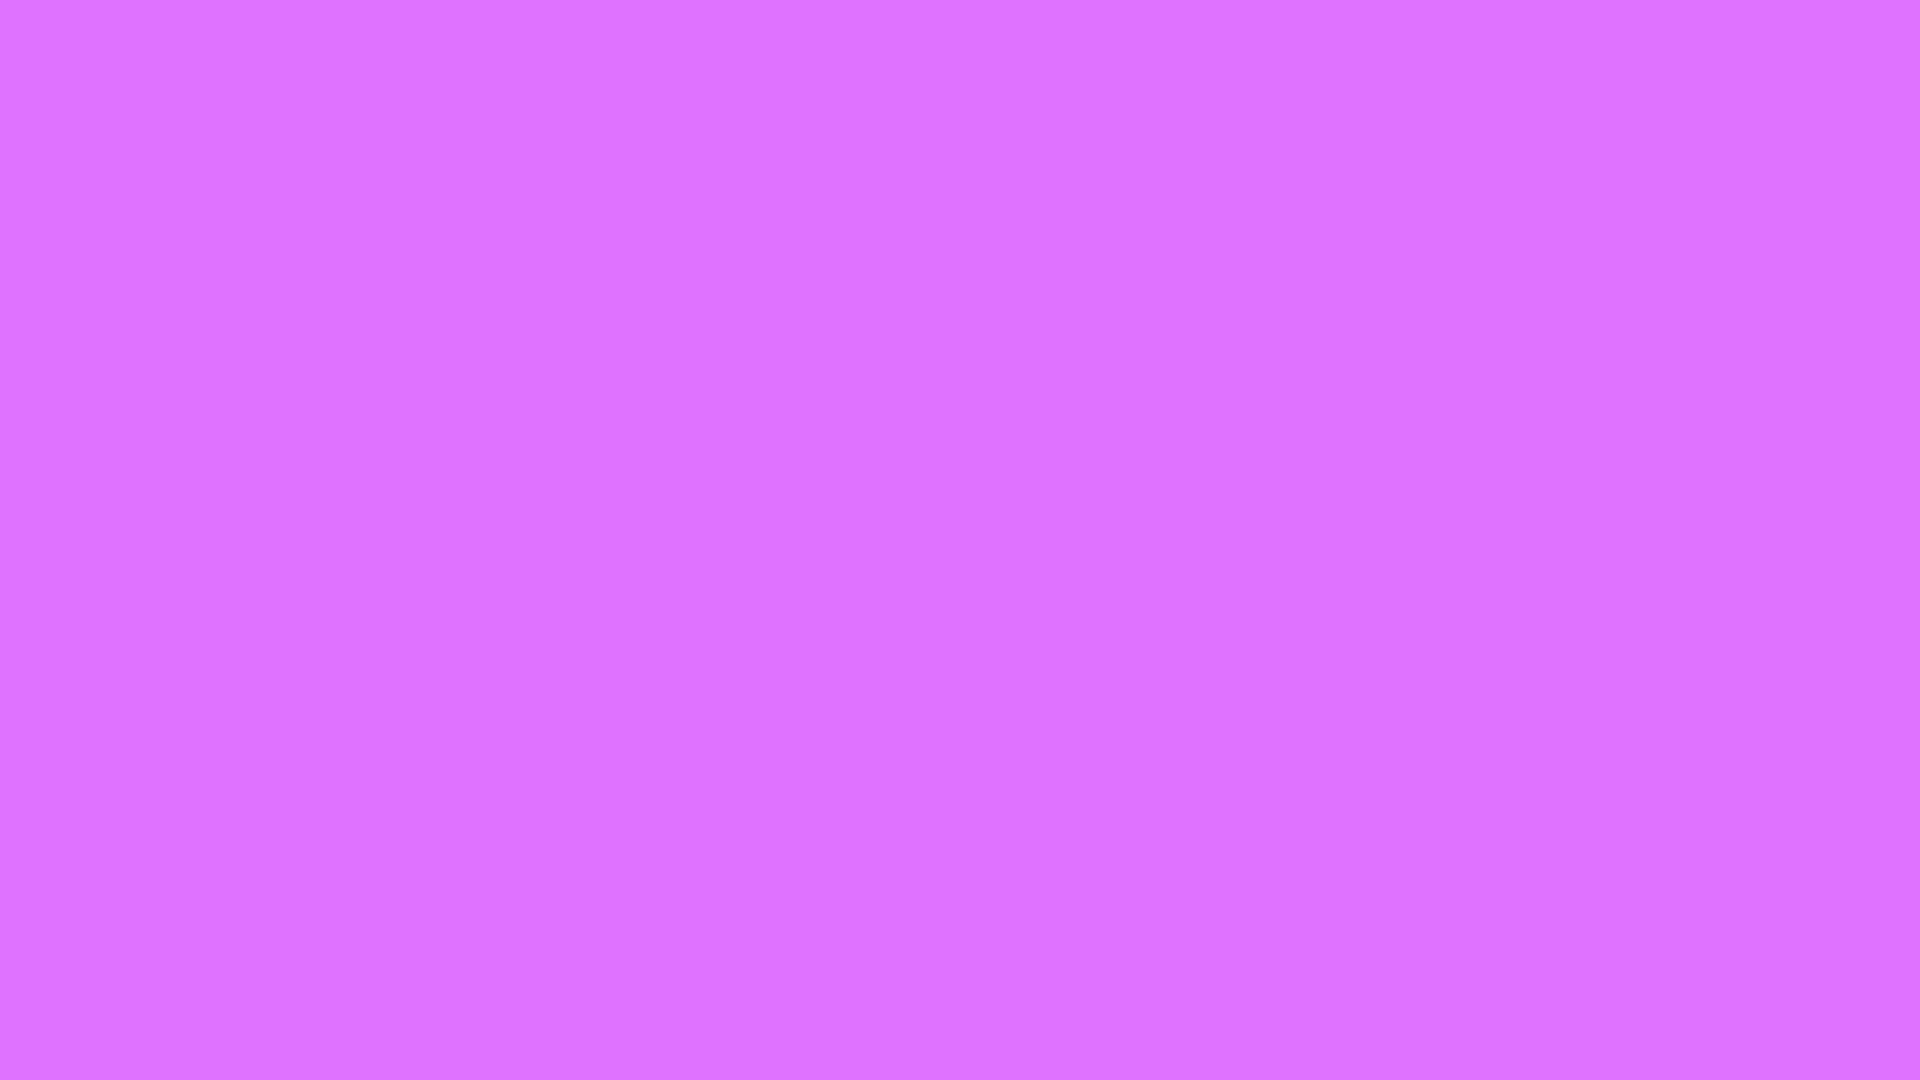 1920x1080 Heliotrope Solid Color Background